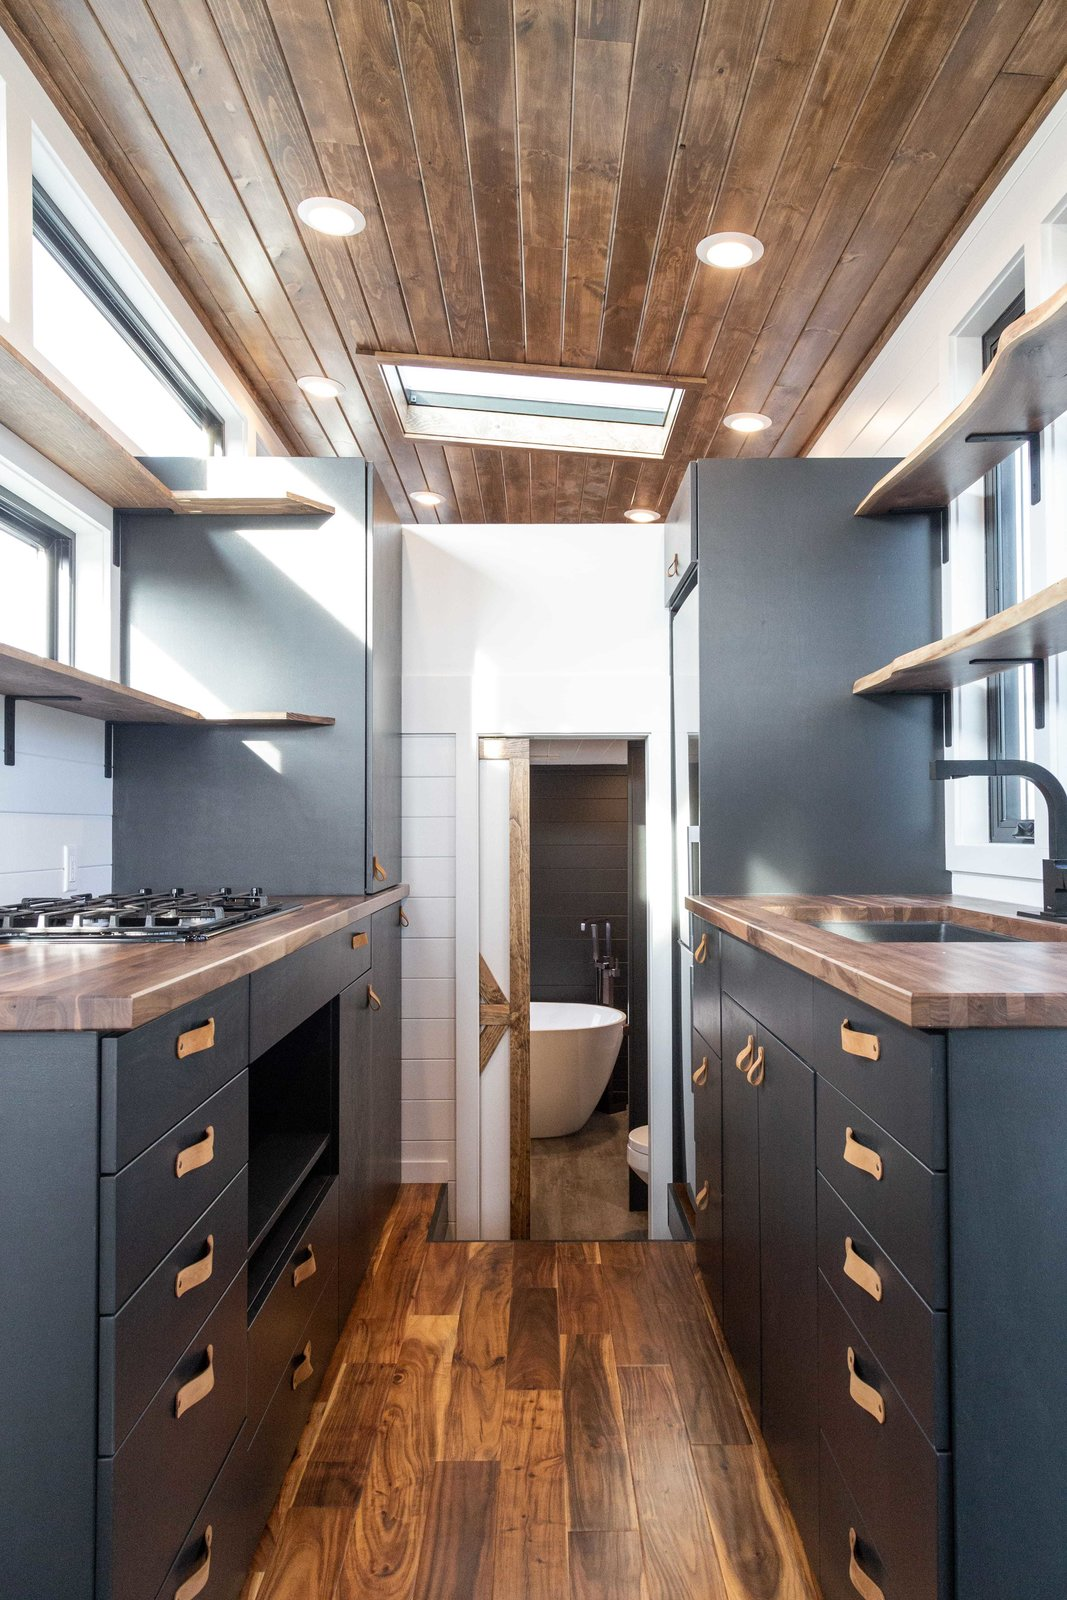 Liberation Tiny Homes Stoltzfus Gooseneck kitchen